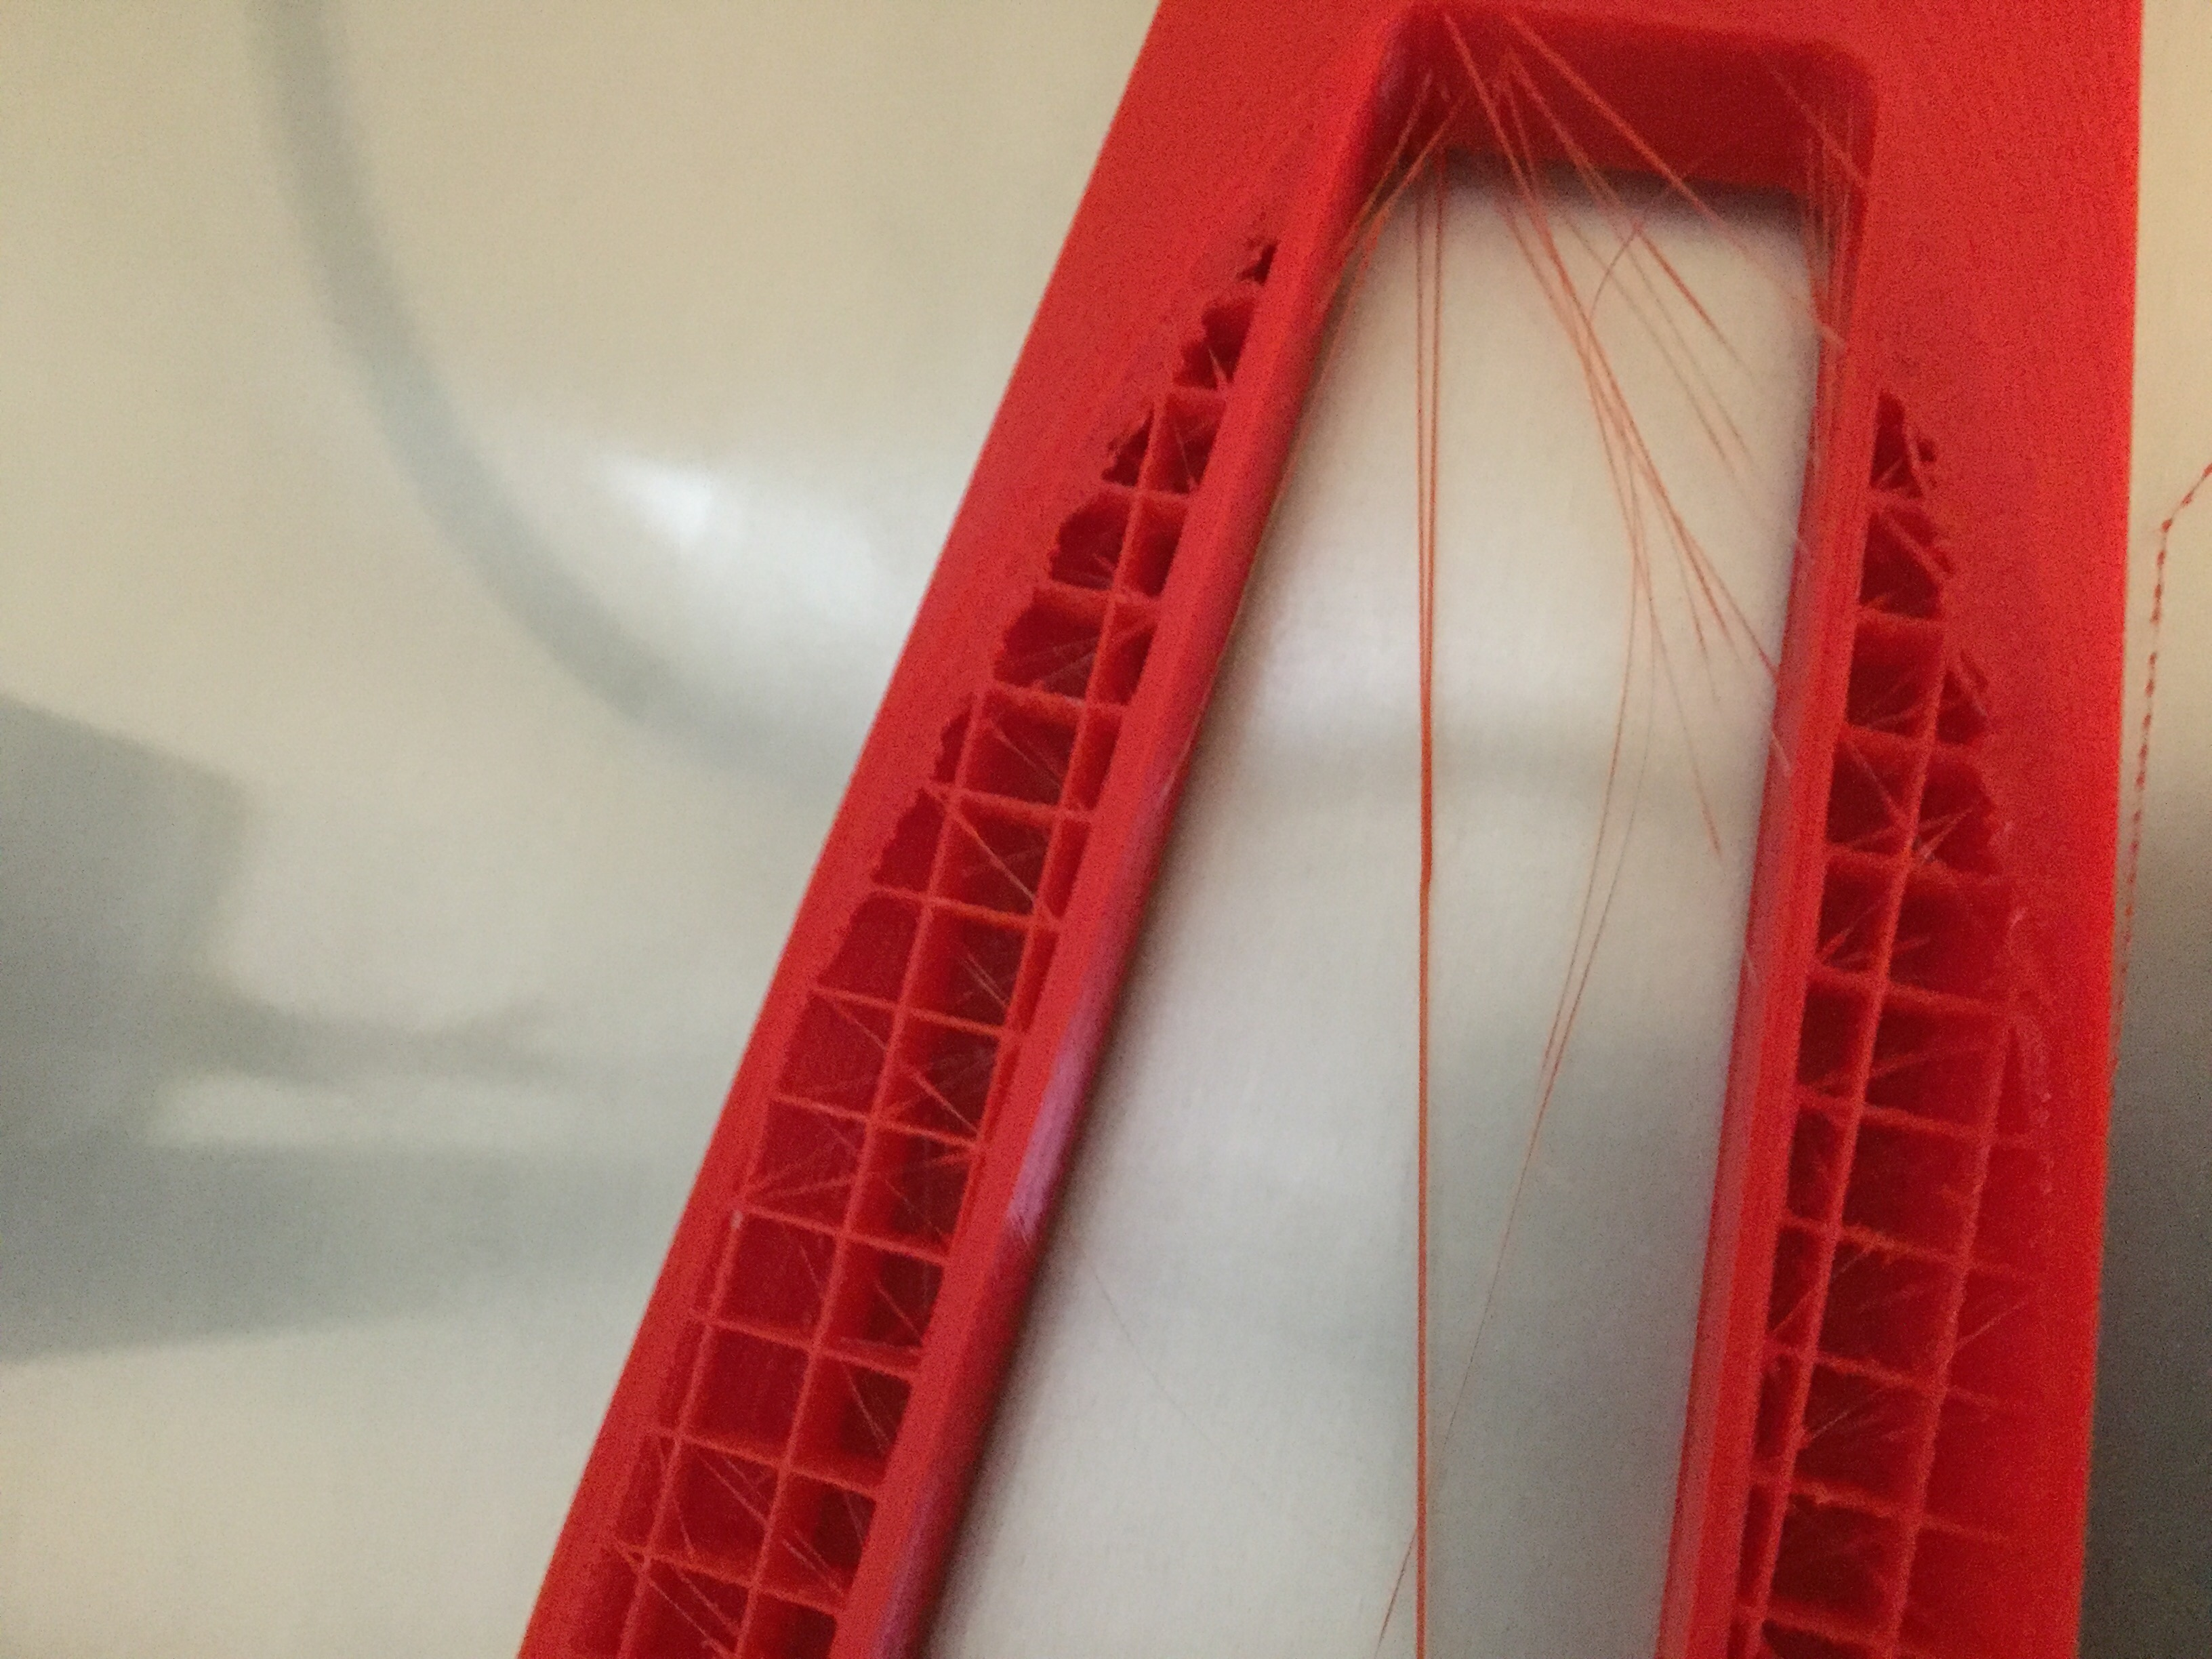 Stringing even with retraction - 3D Printing / 3D Printers